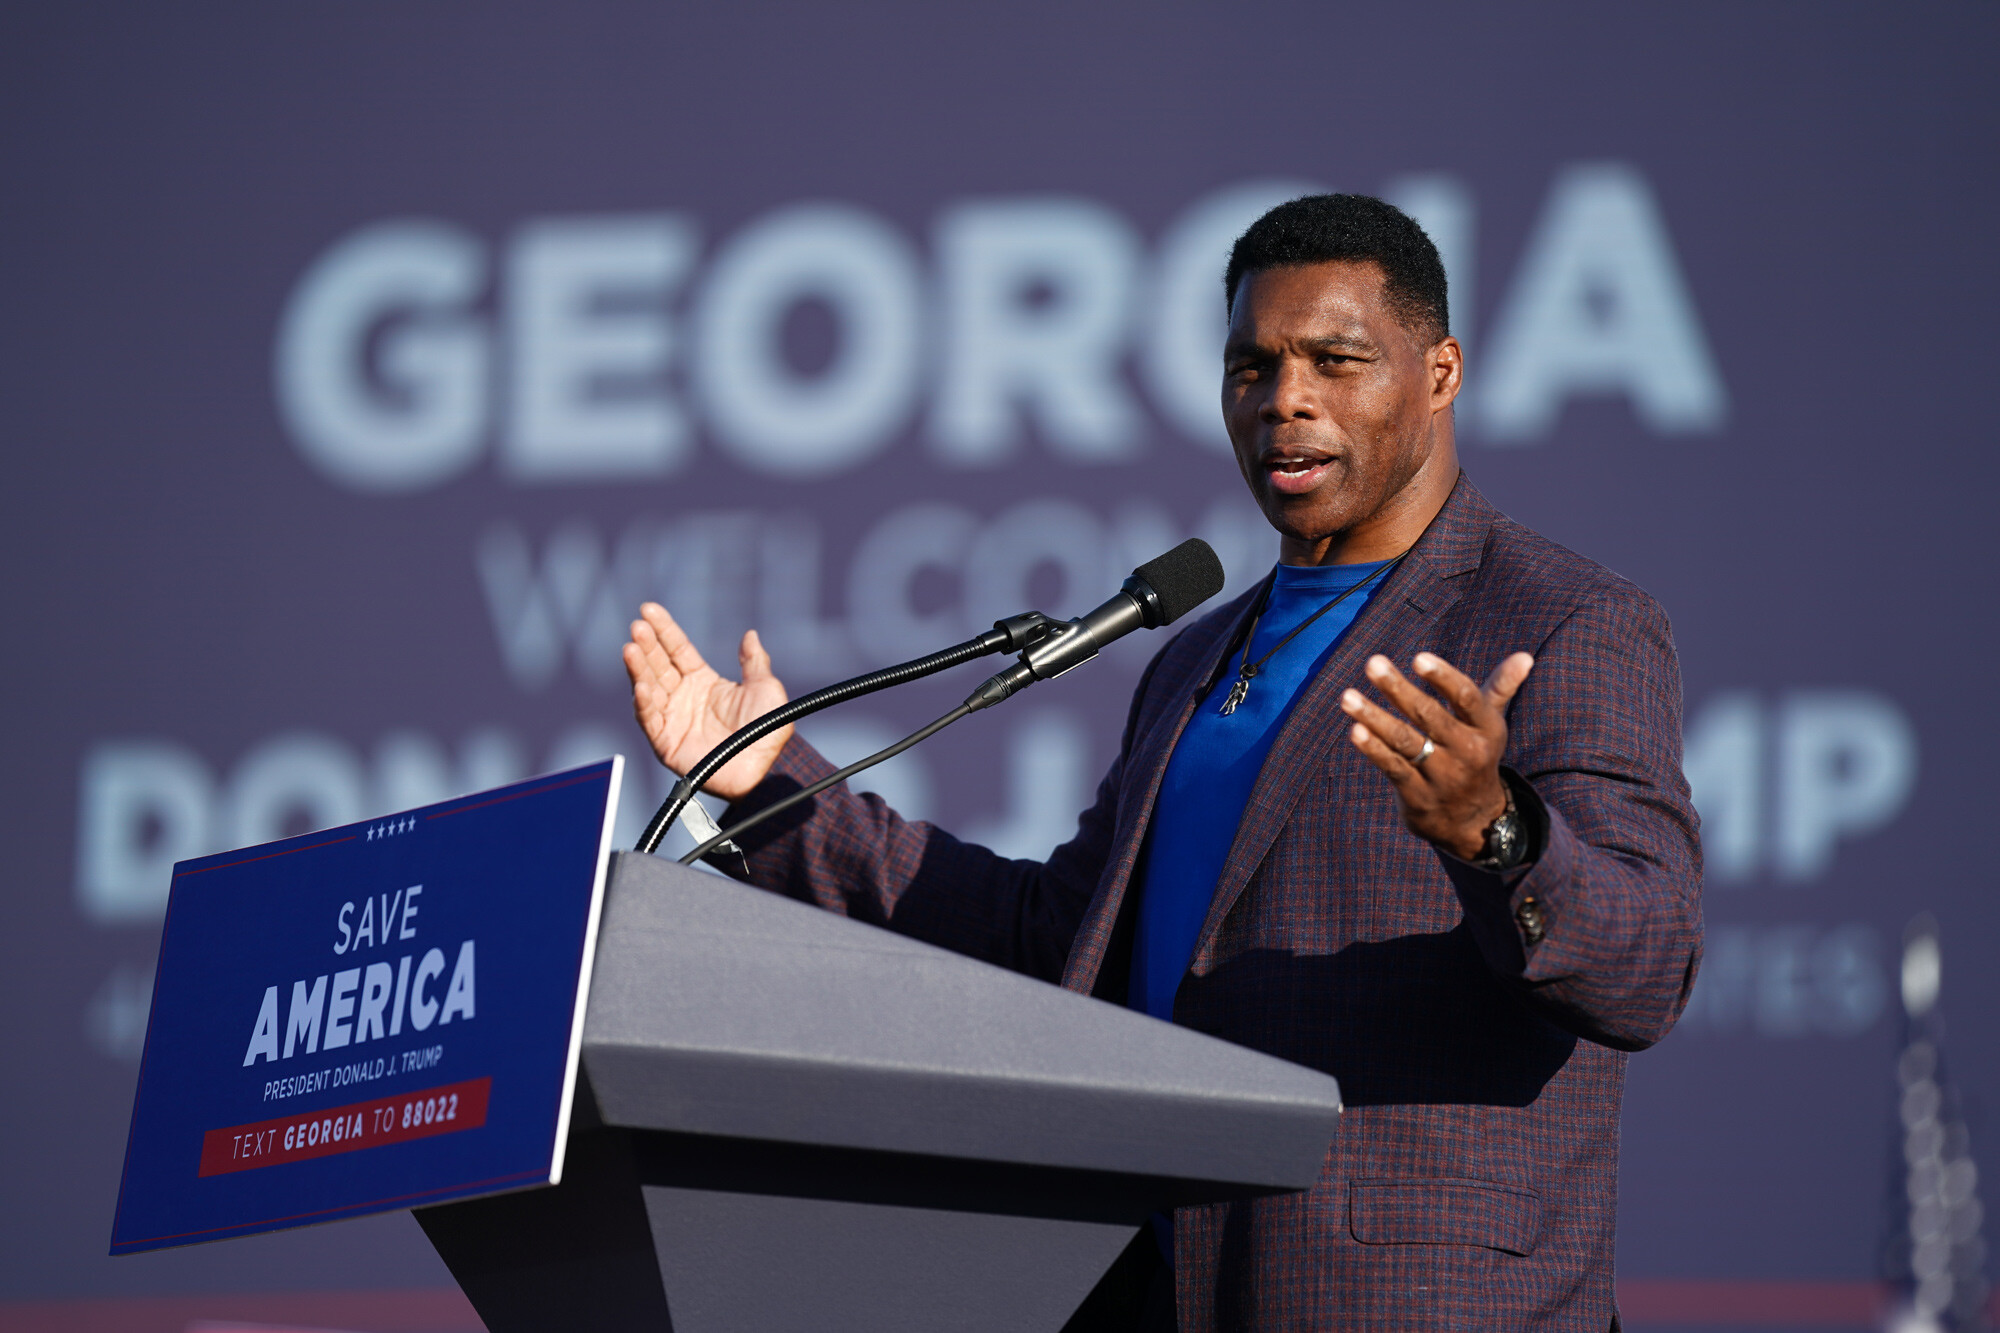 <i>Sean Rayford/Getty Images</i><br/>Republican Senate candidate Herschel Walker speaks at a rally featuring former US President Donald Trump on September 25